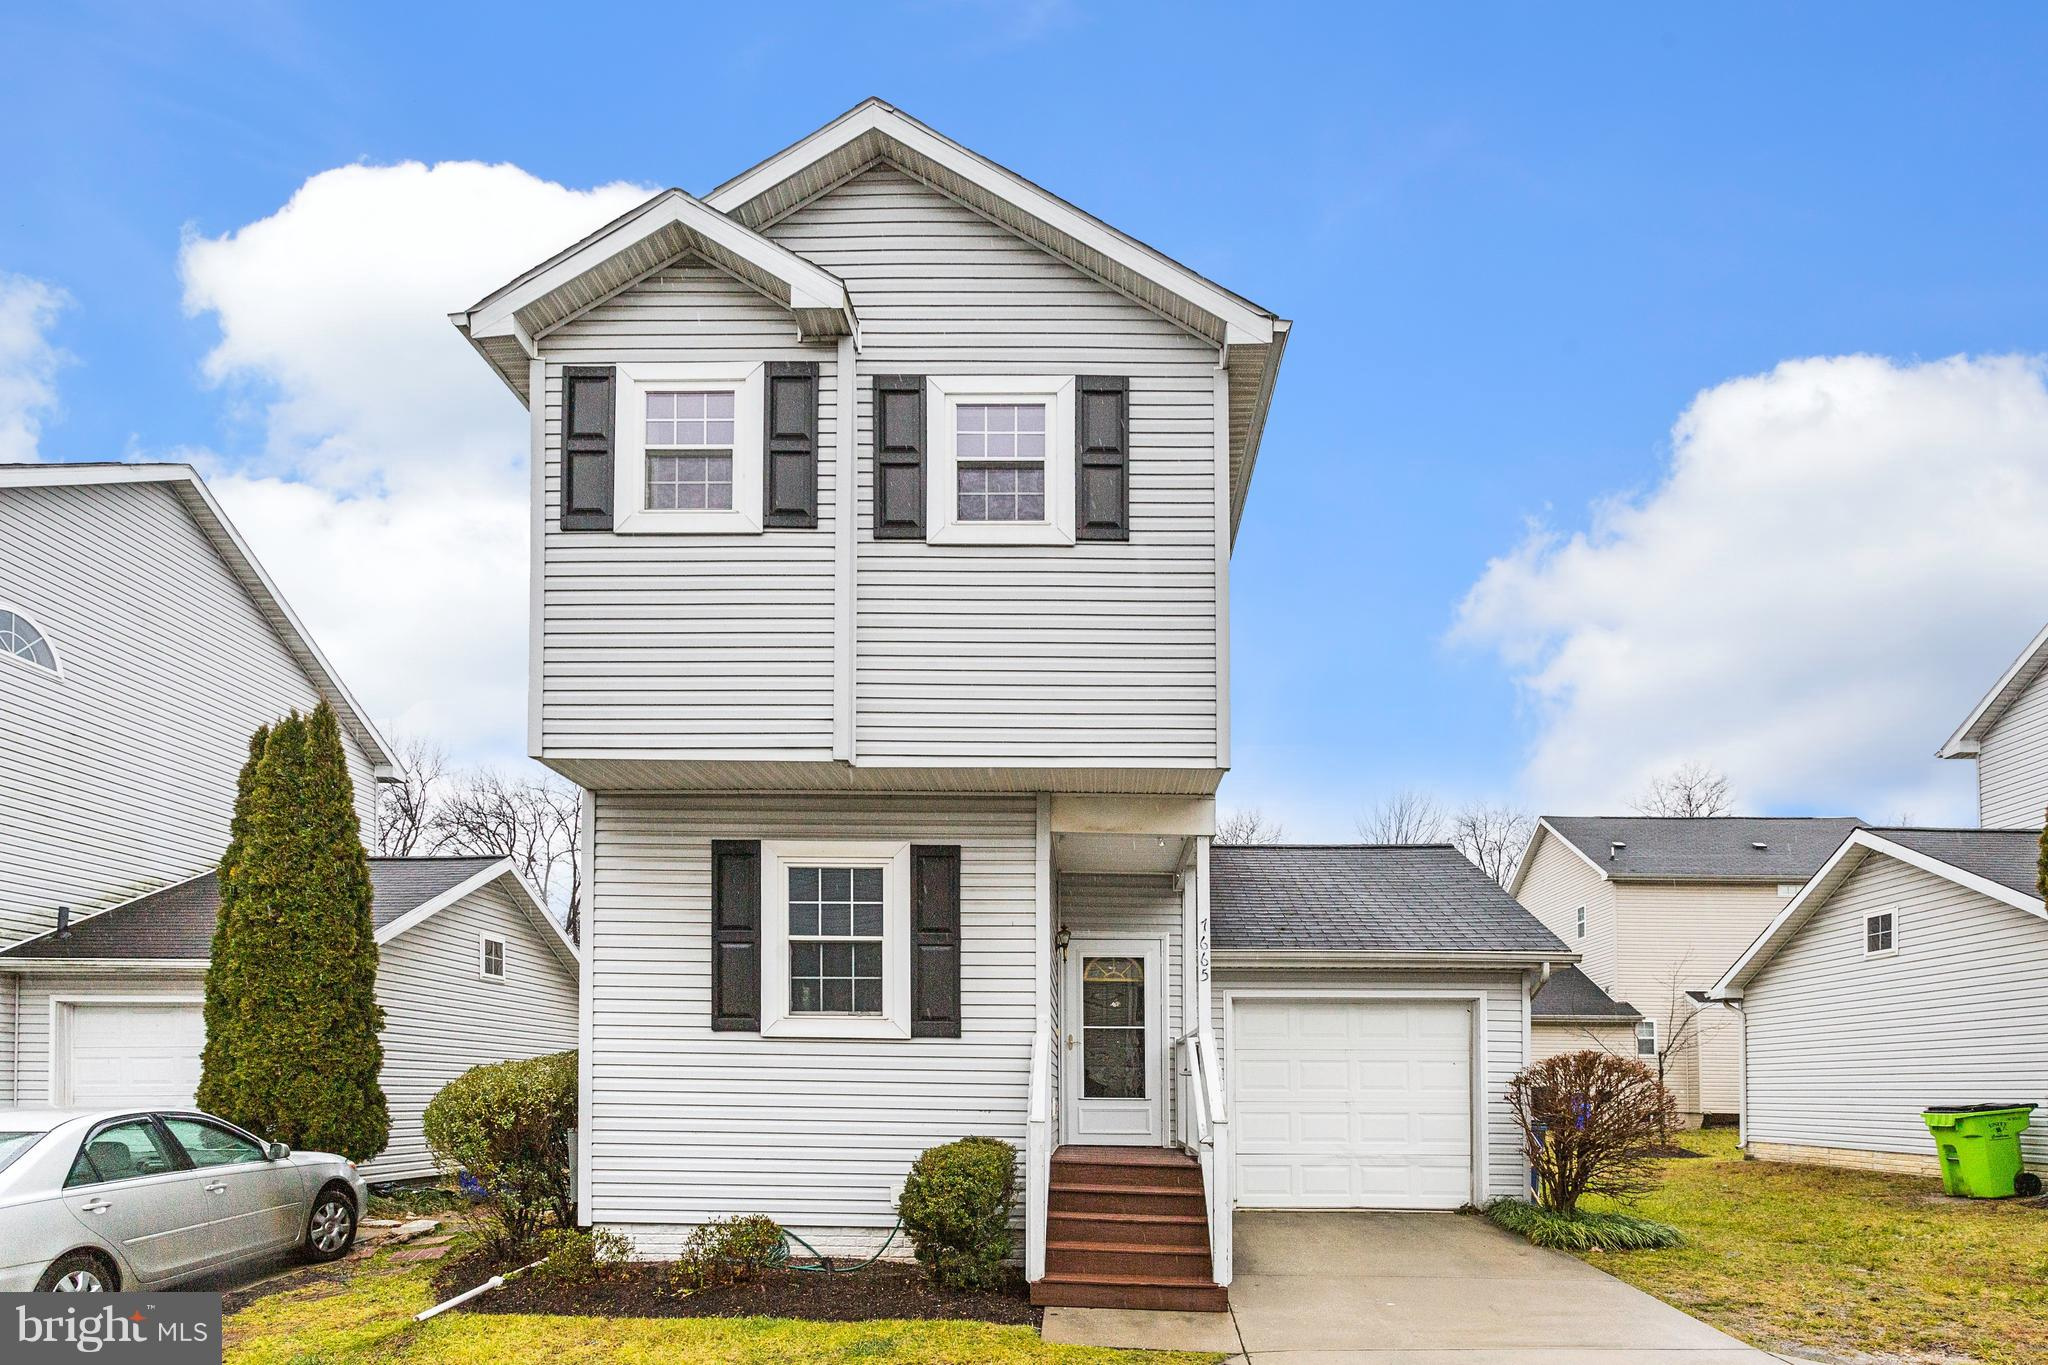 7665 BLUFF POINT LANE, ELKRIDGE, MD 21075